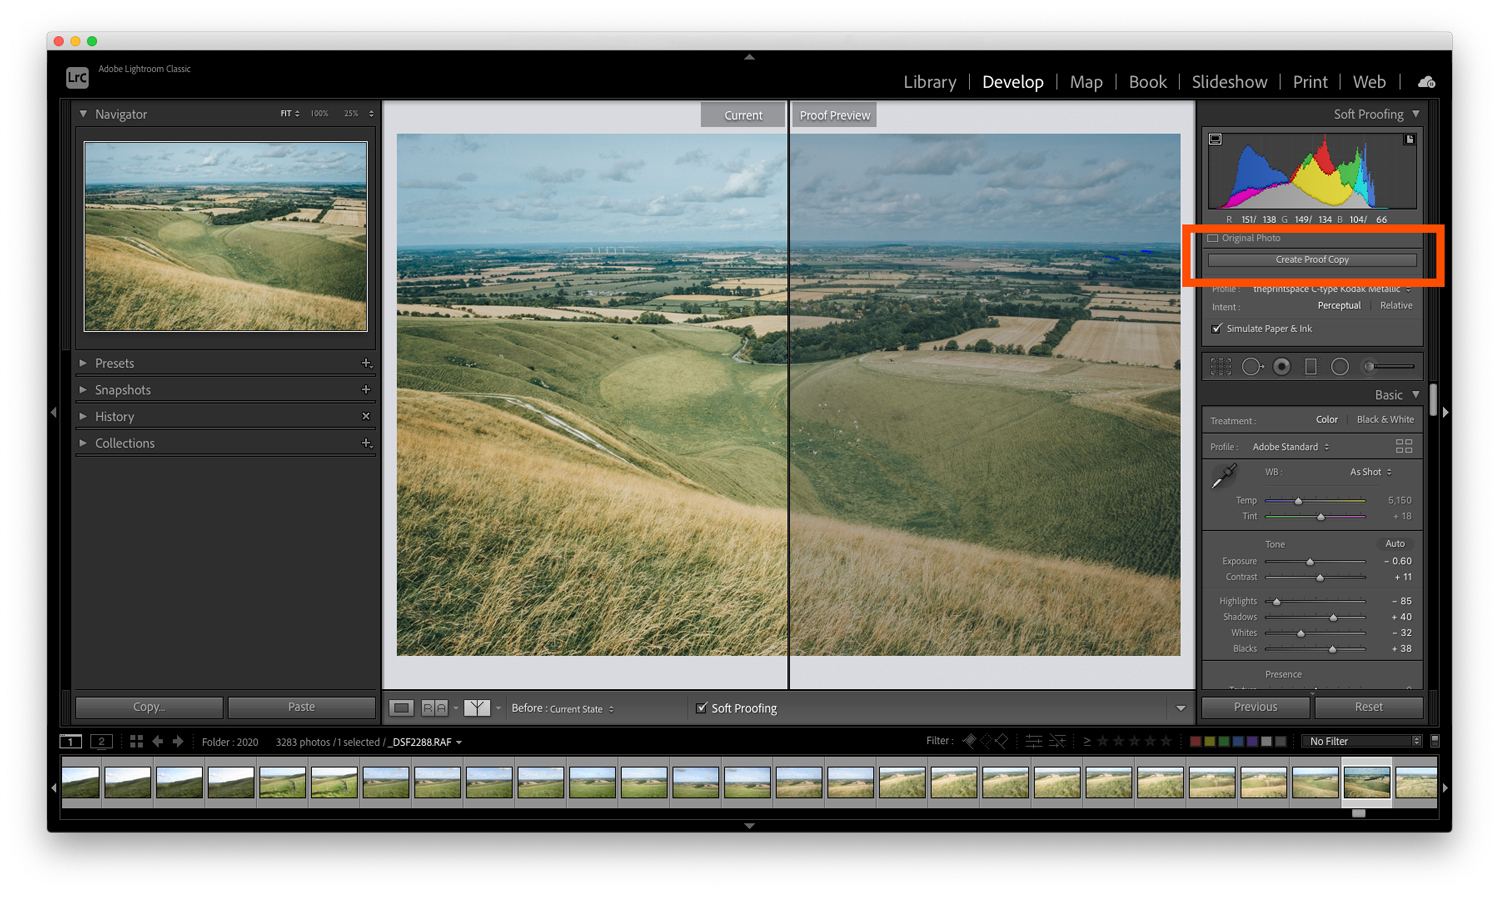 Soft Proofing in Lightroom proof preview